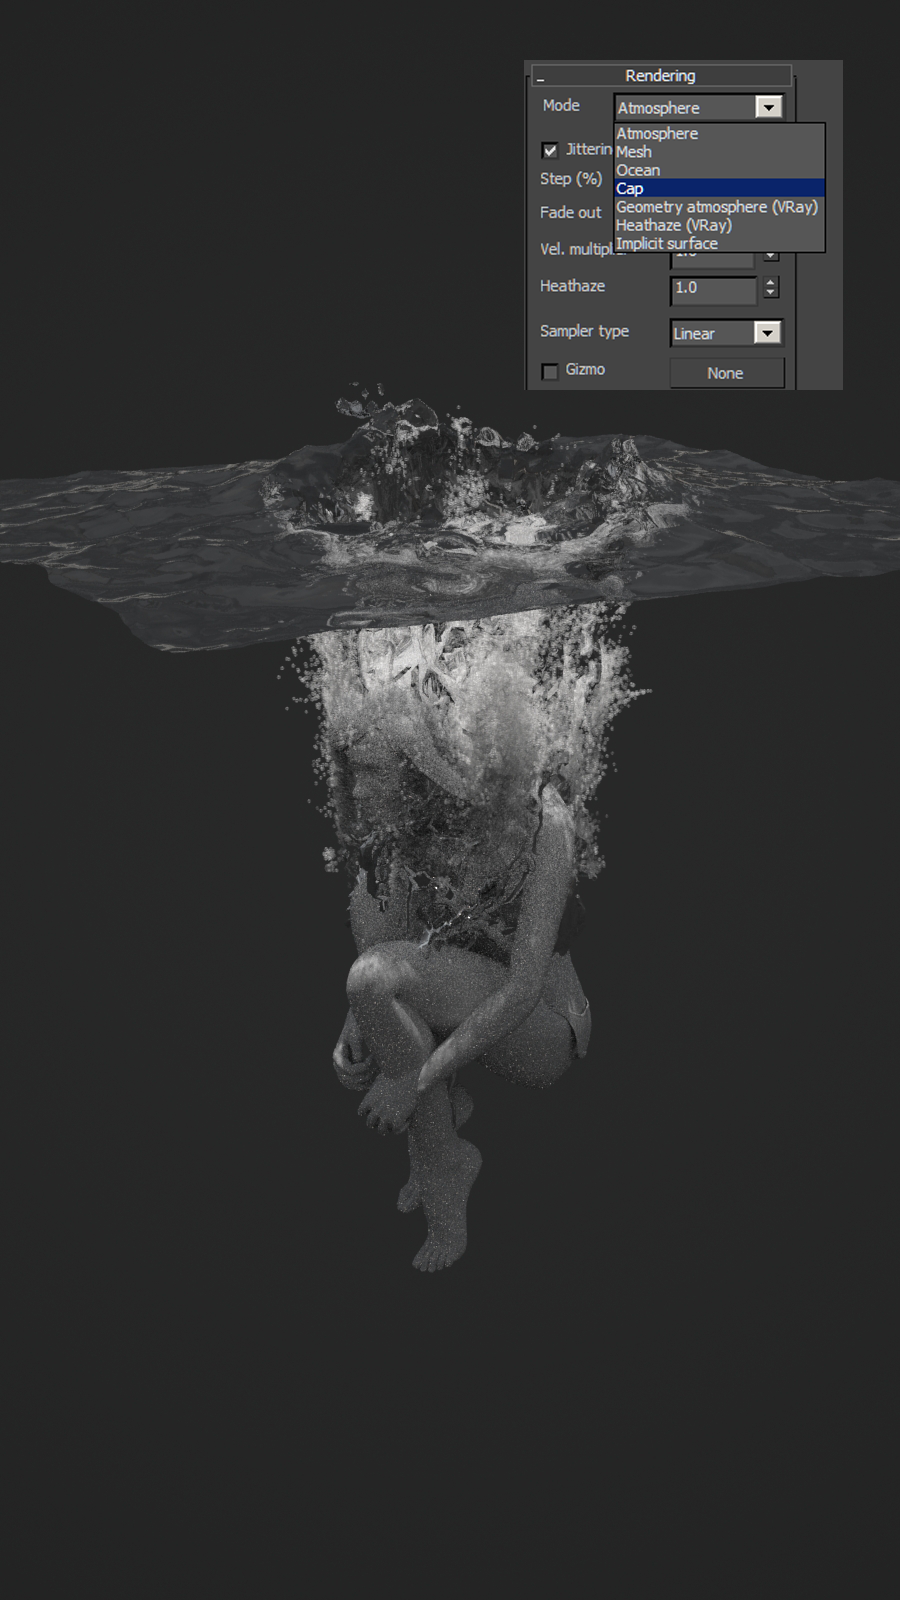 krakatoa 3ds max 2011 crack